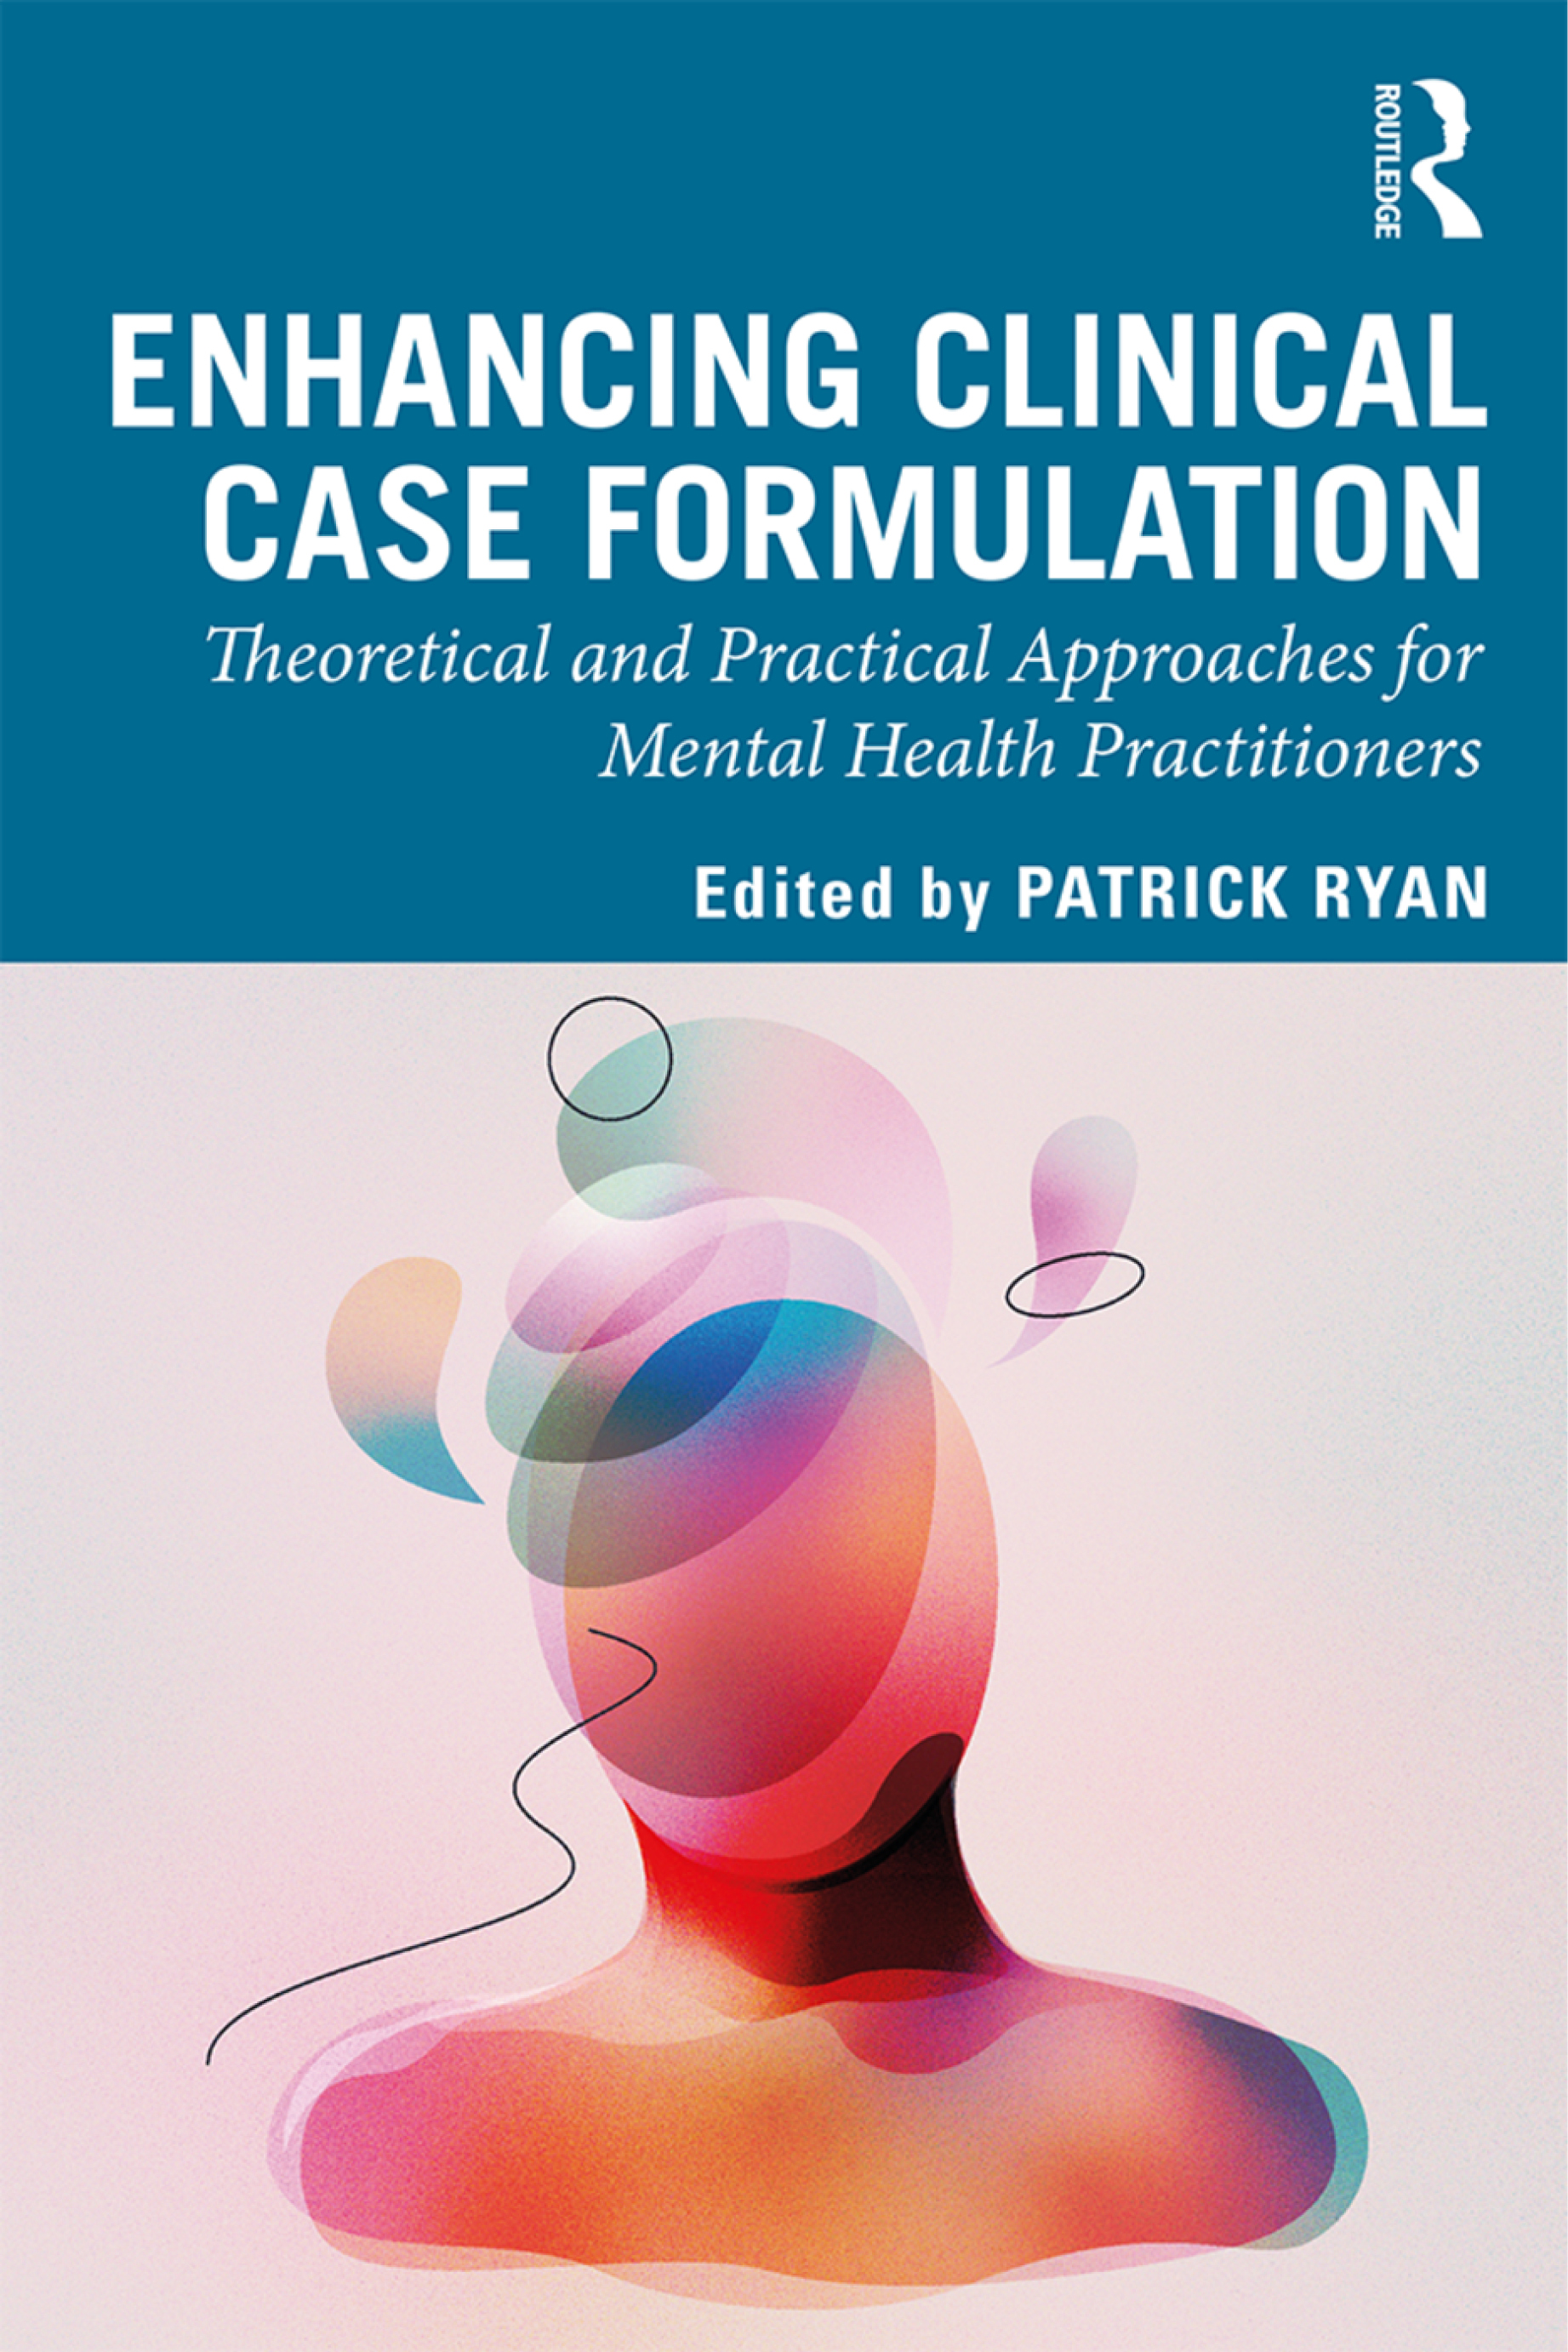 Enhancing Clinical Case Formulation: Theoretical and Practical Approaches for Mental Health Practitioners book cover